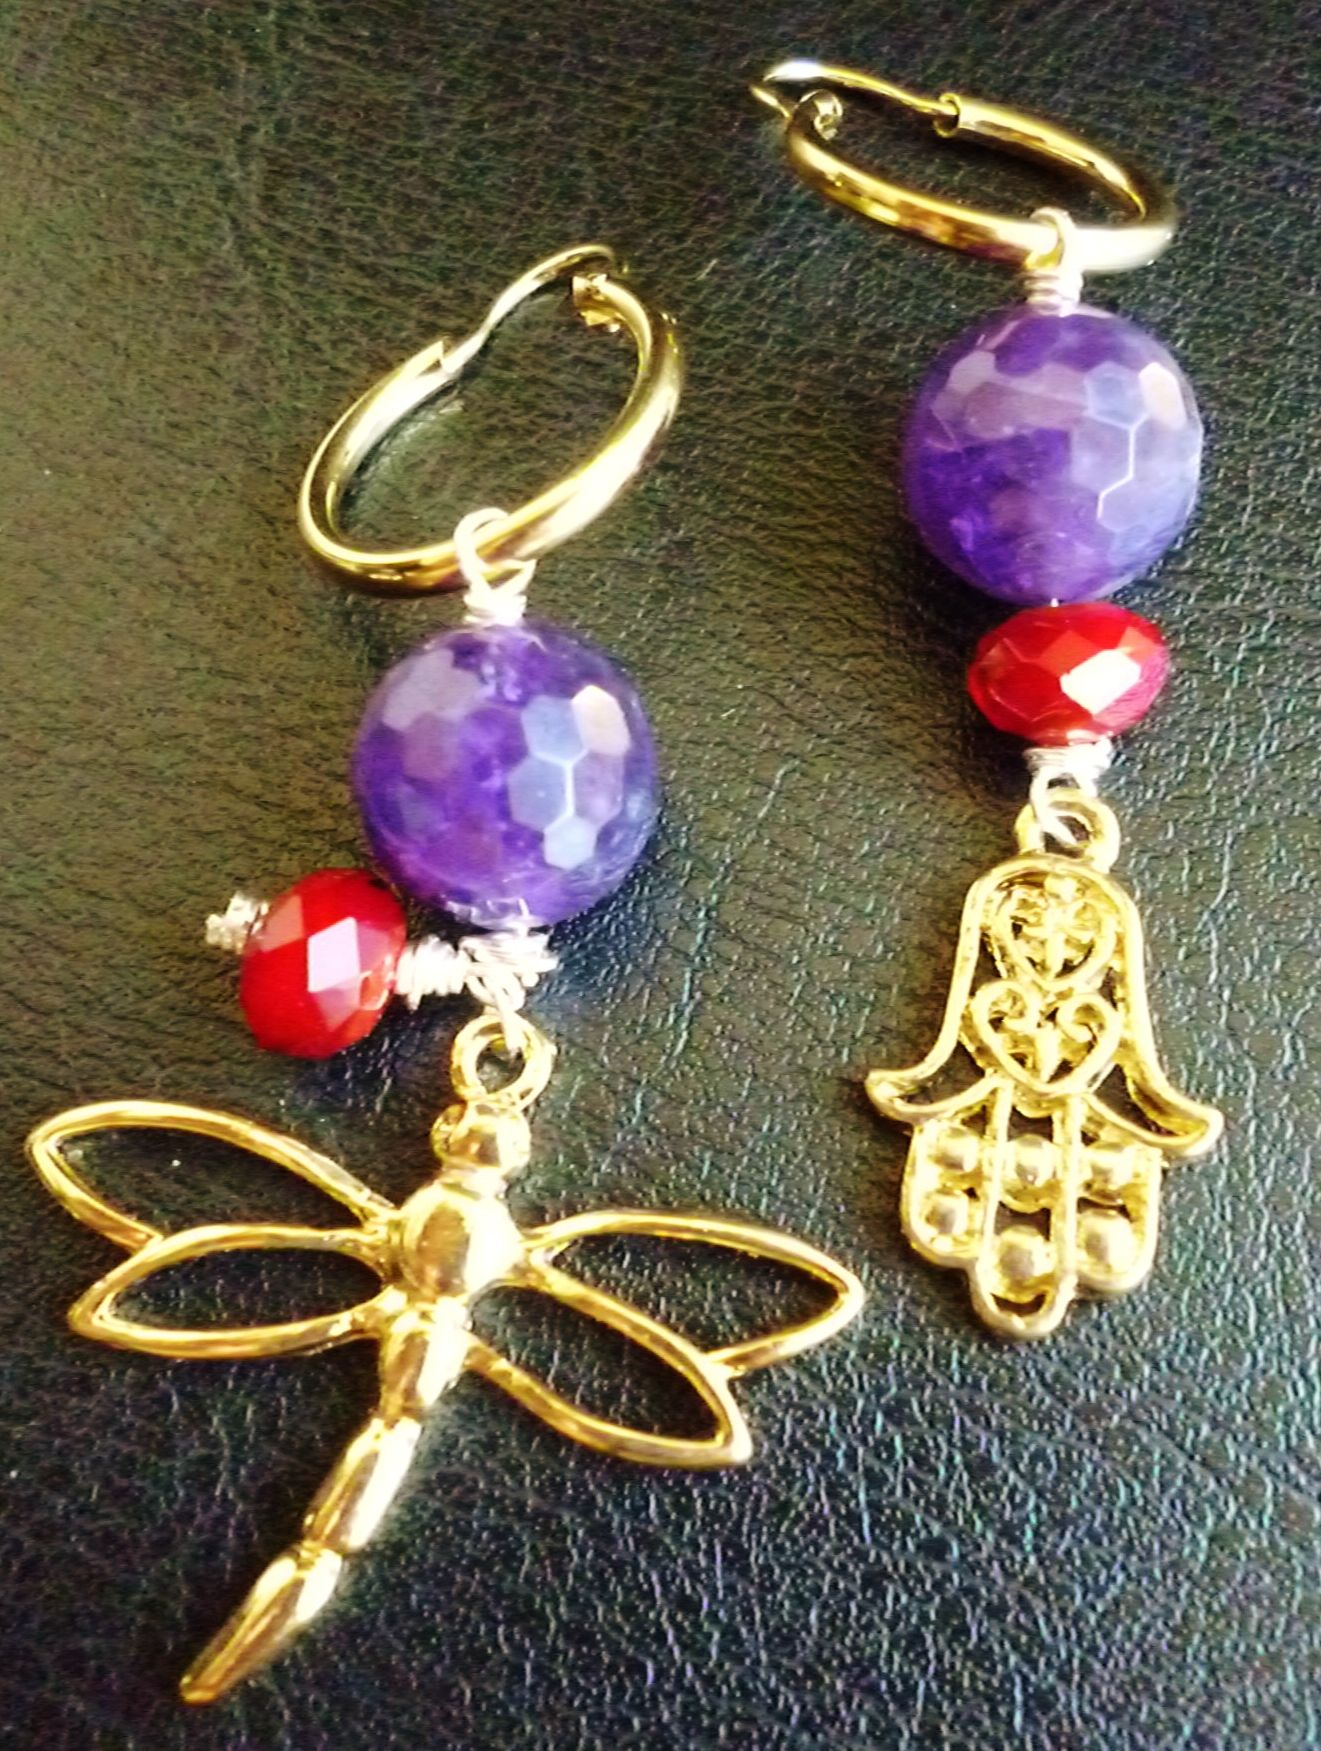 gold filled earrings with purple agate, red crystal, gold filled dragonfly and hand of Fatima $30